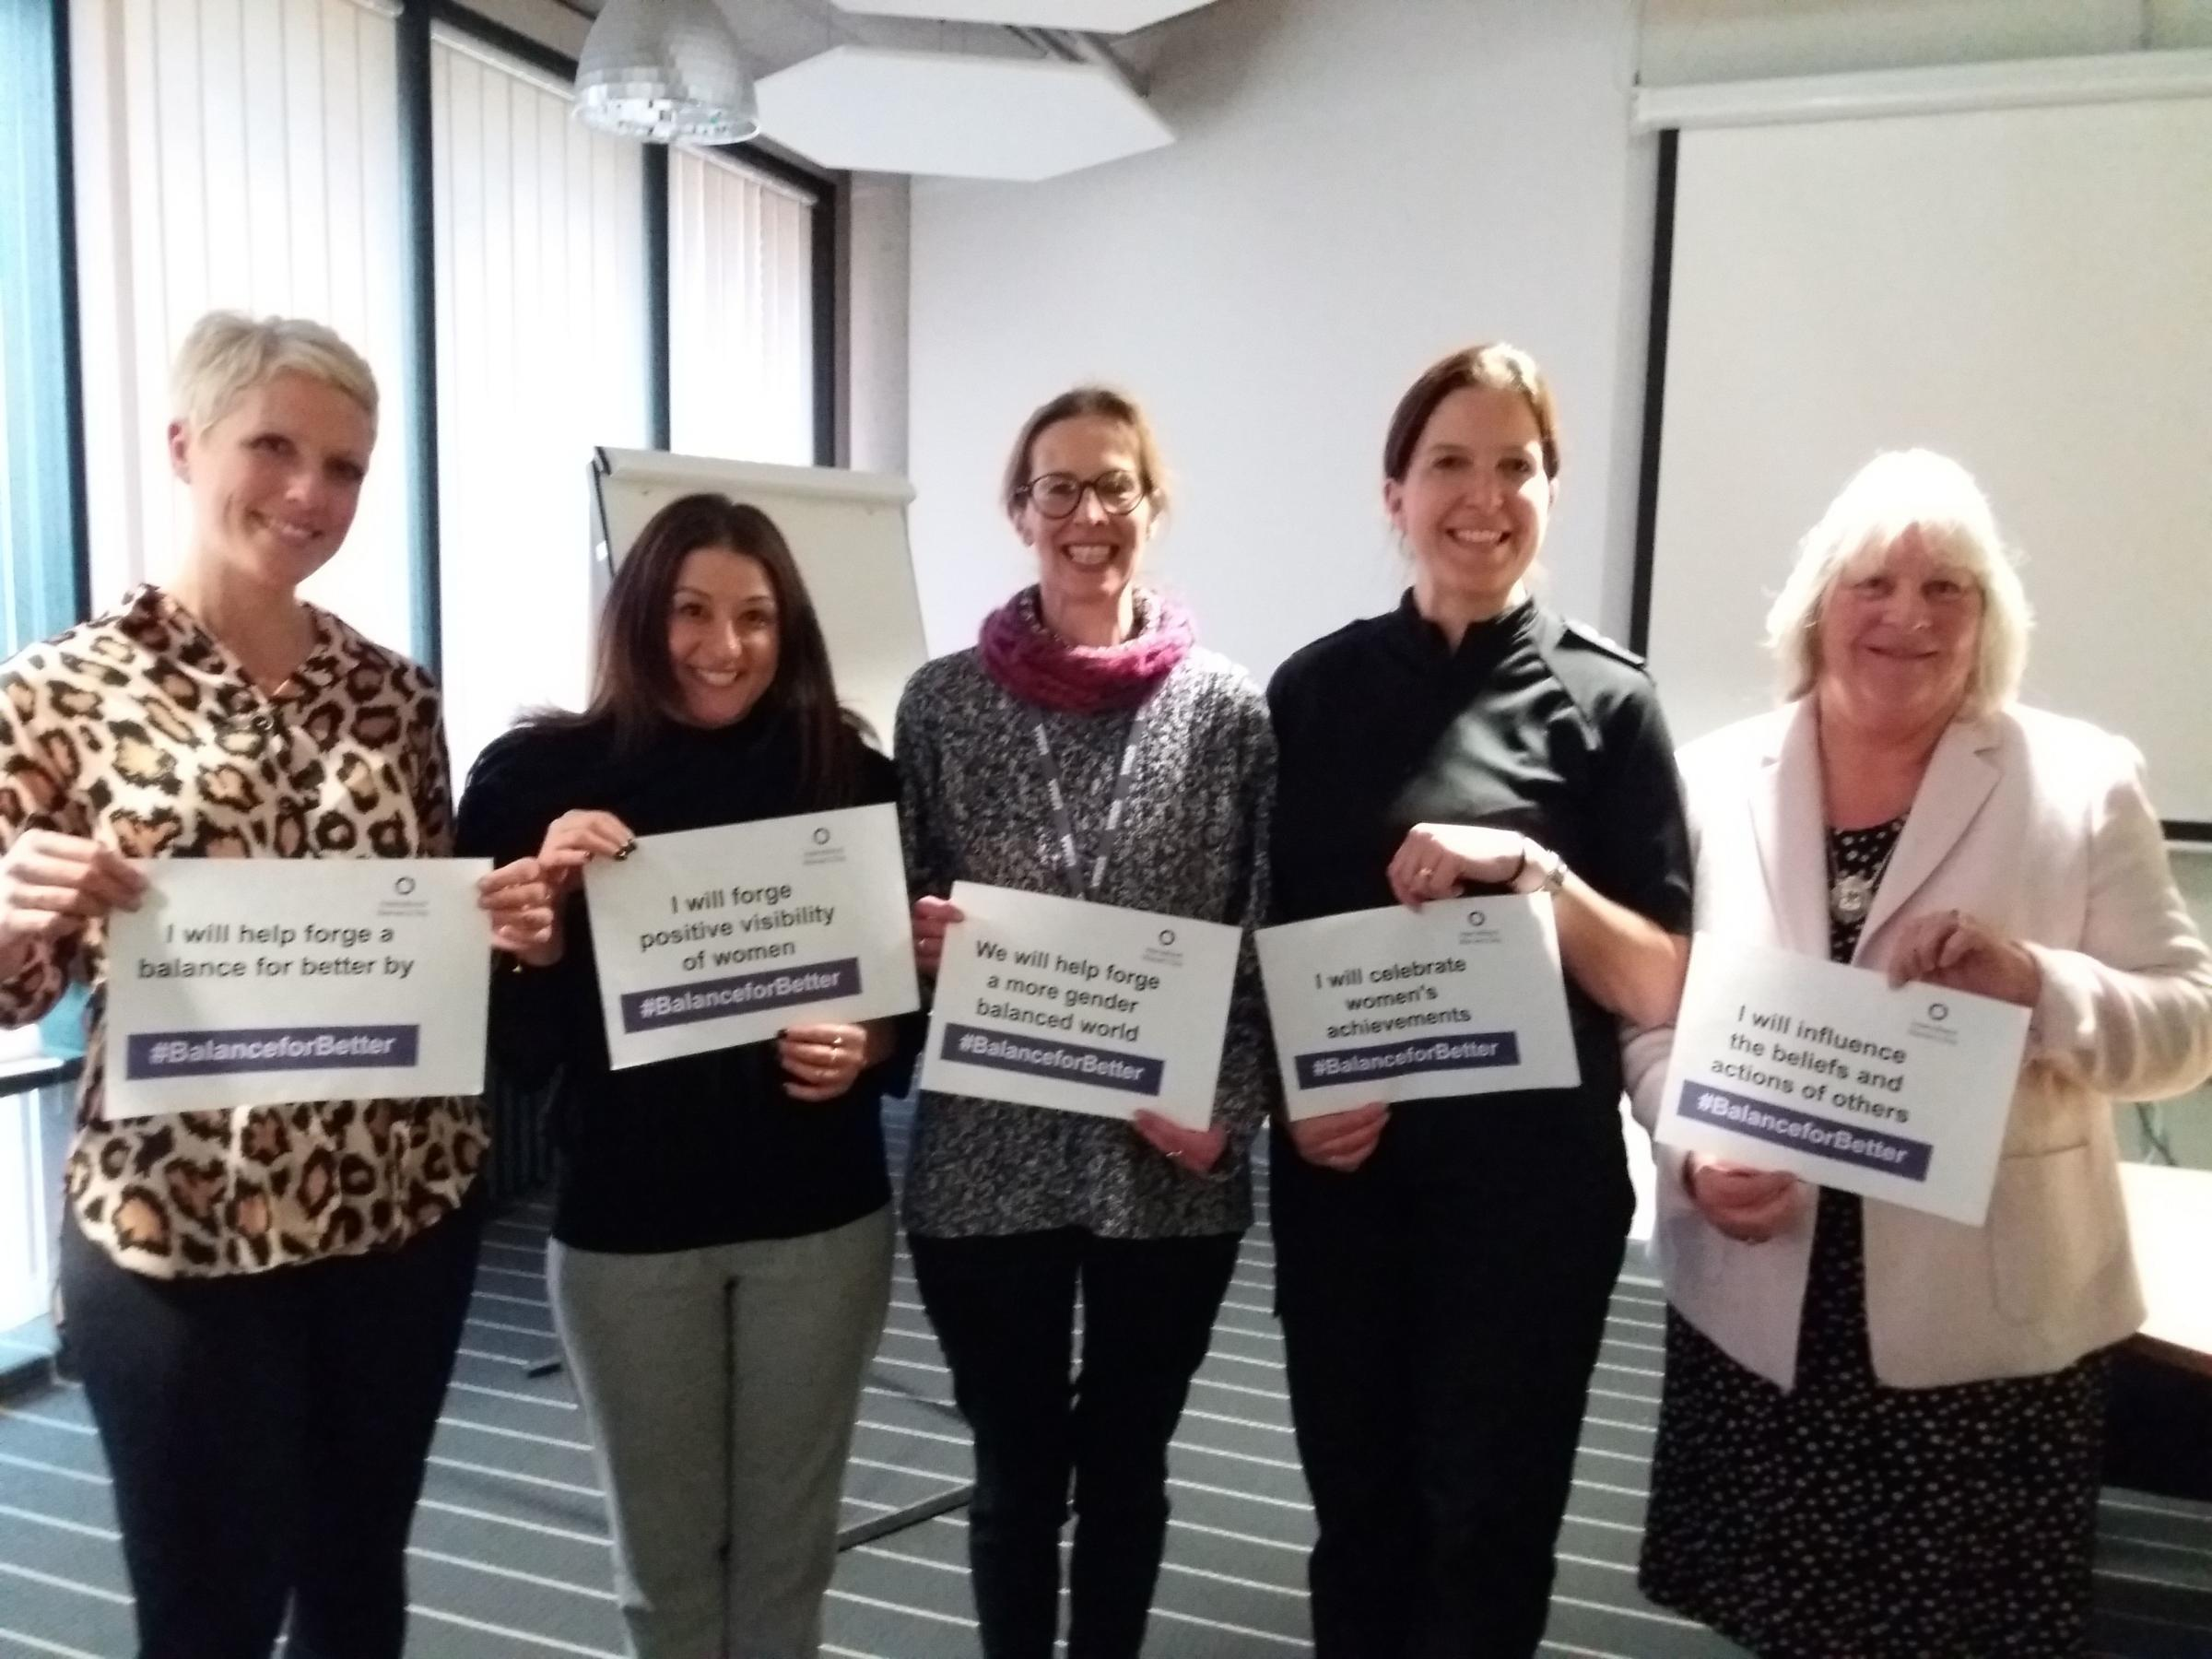 CELEBRATION: Hayley Blackman, Charlotte Joseph, Katie Newell, Lisa Simpson and Sandra Ford at the Bridgwater YMCA International Women's Day event